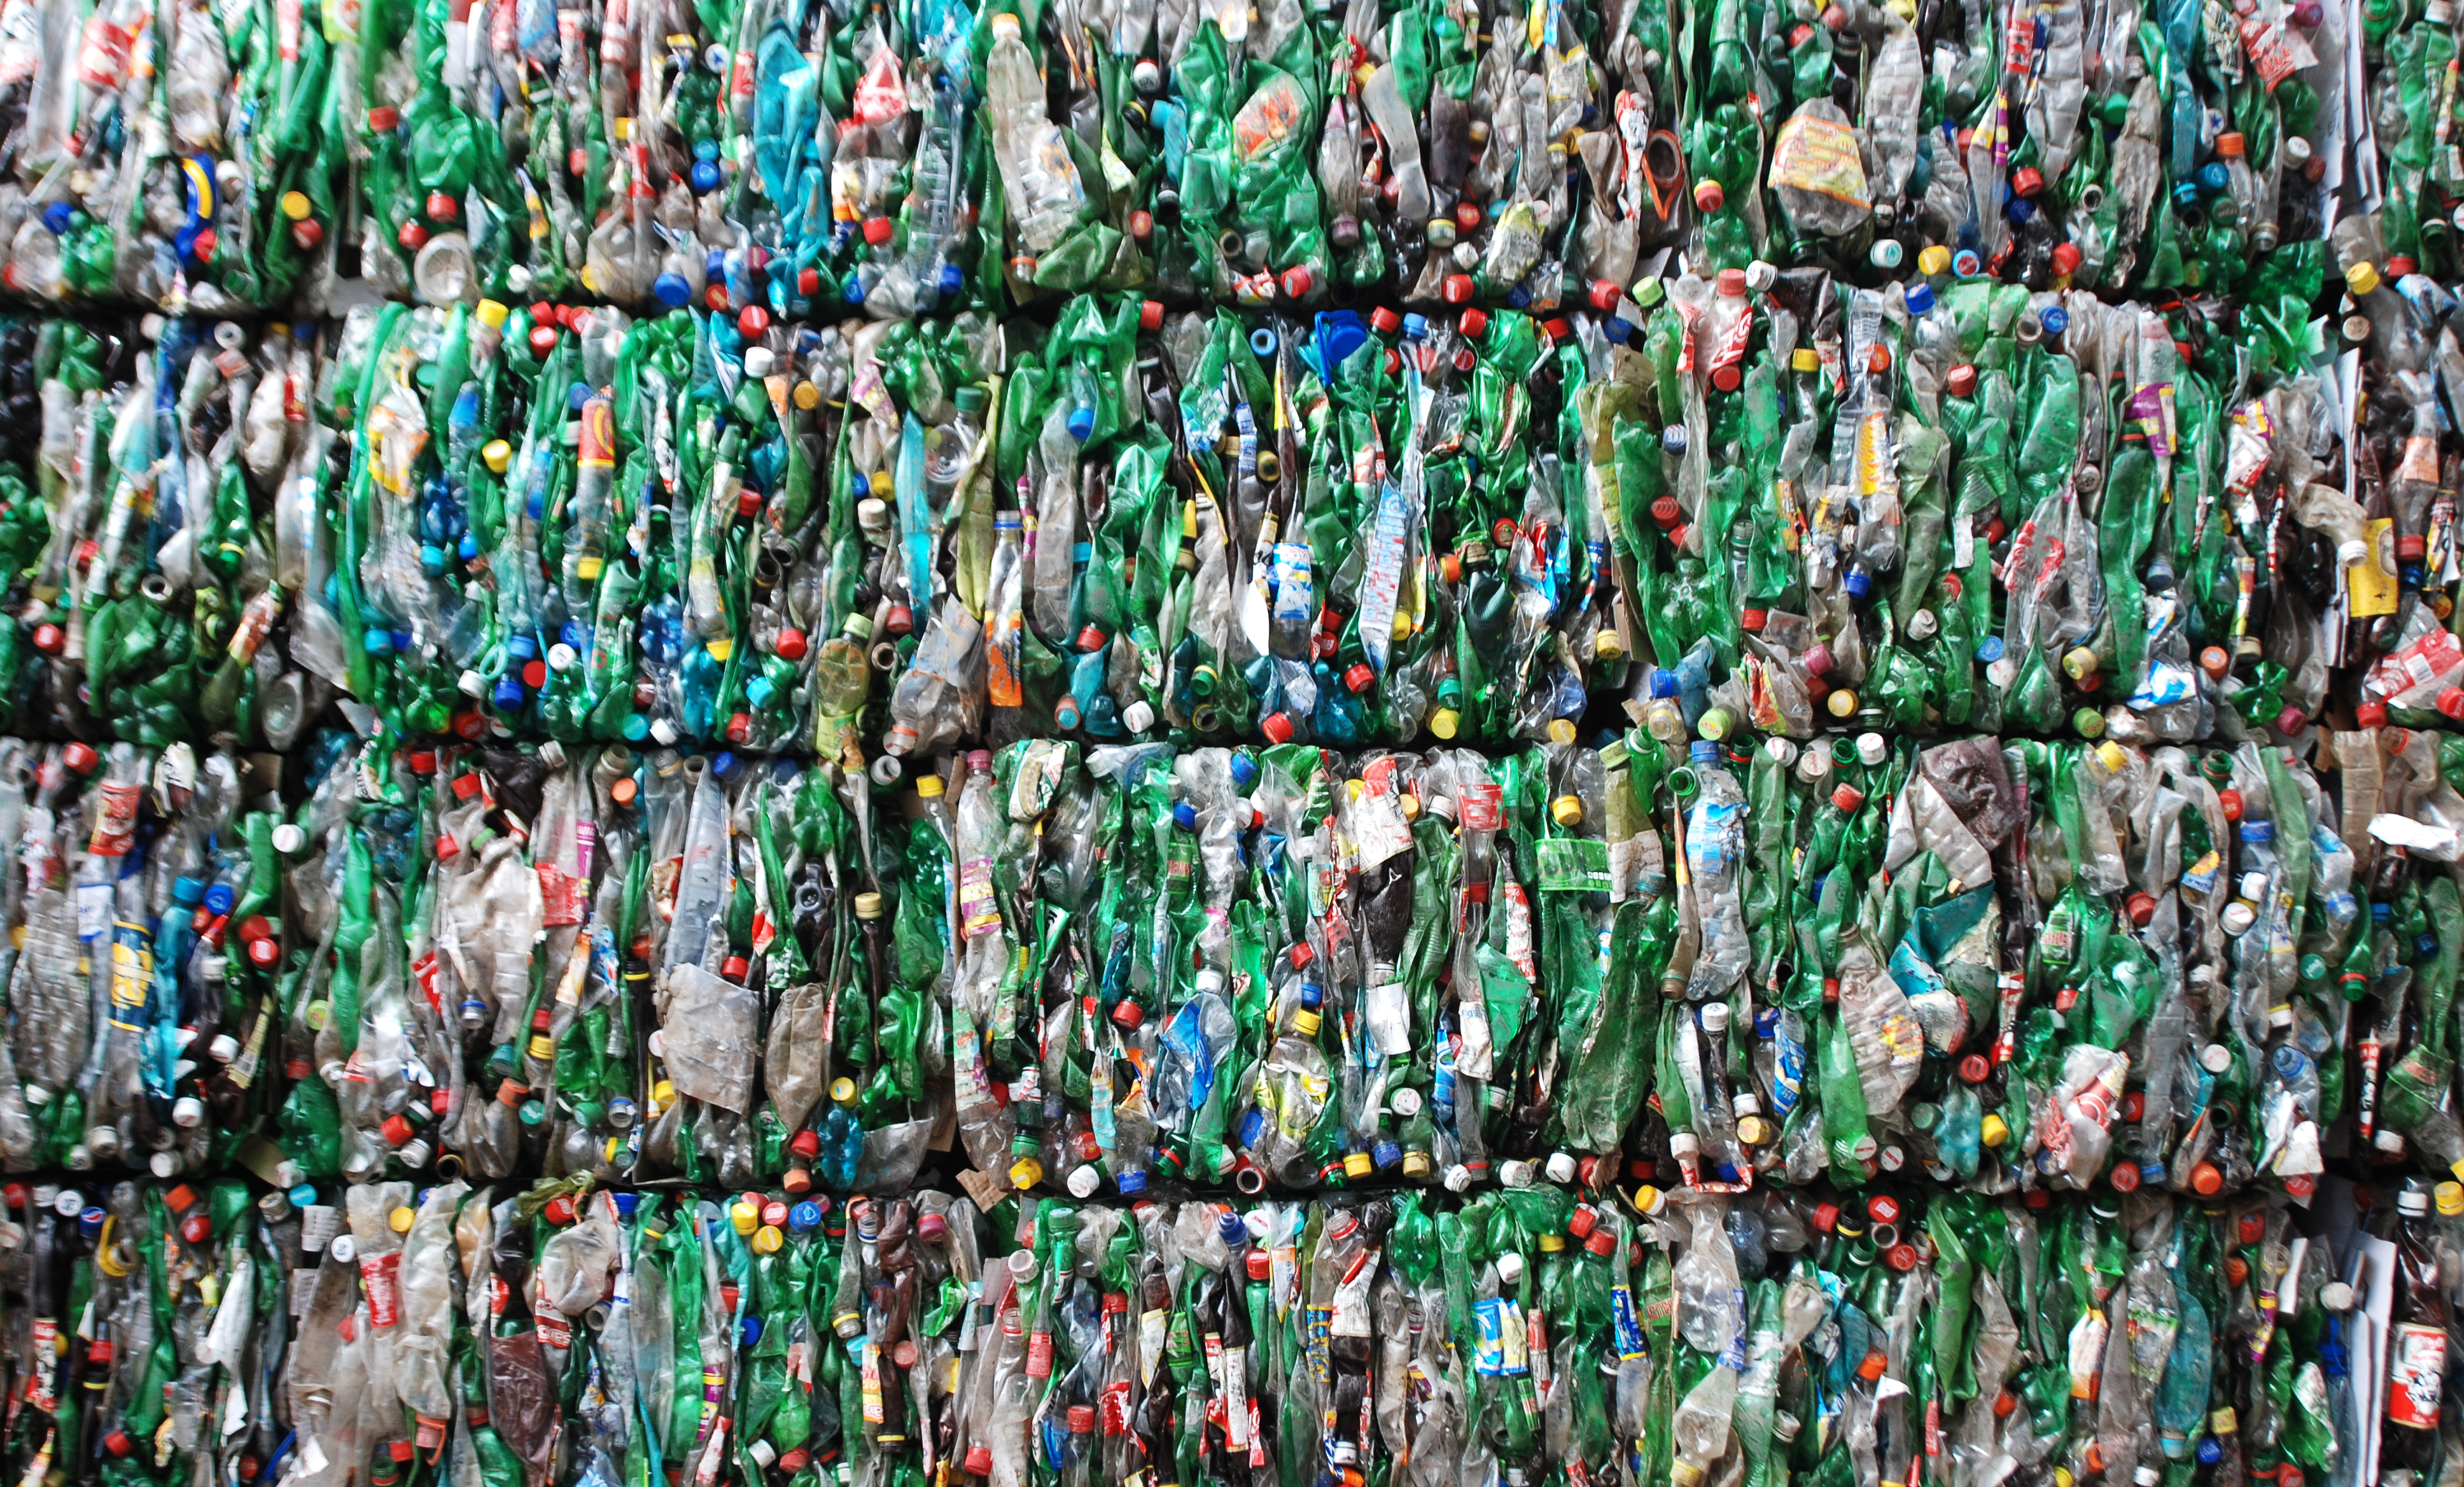 America's new recycling crisis, explained by an expert